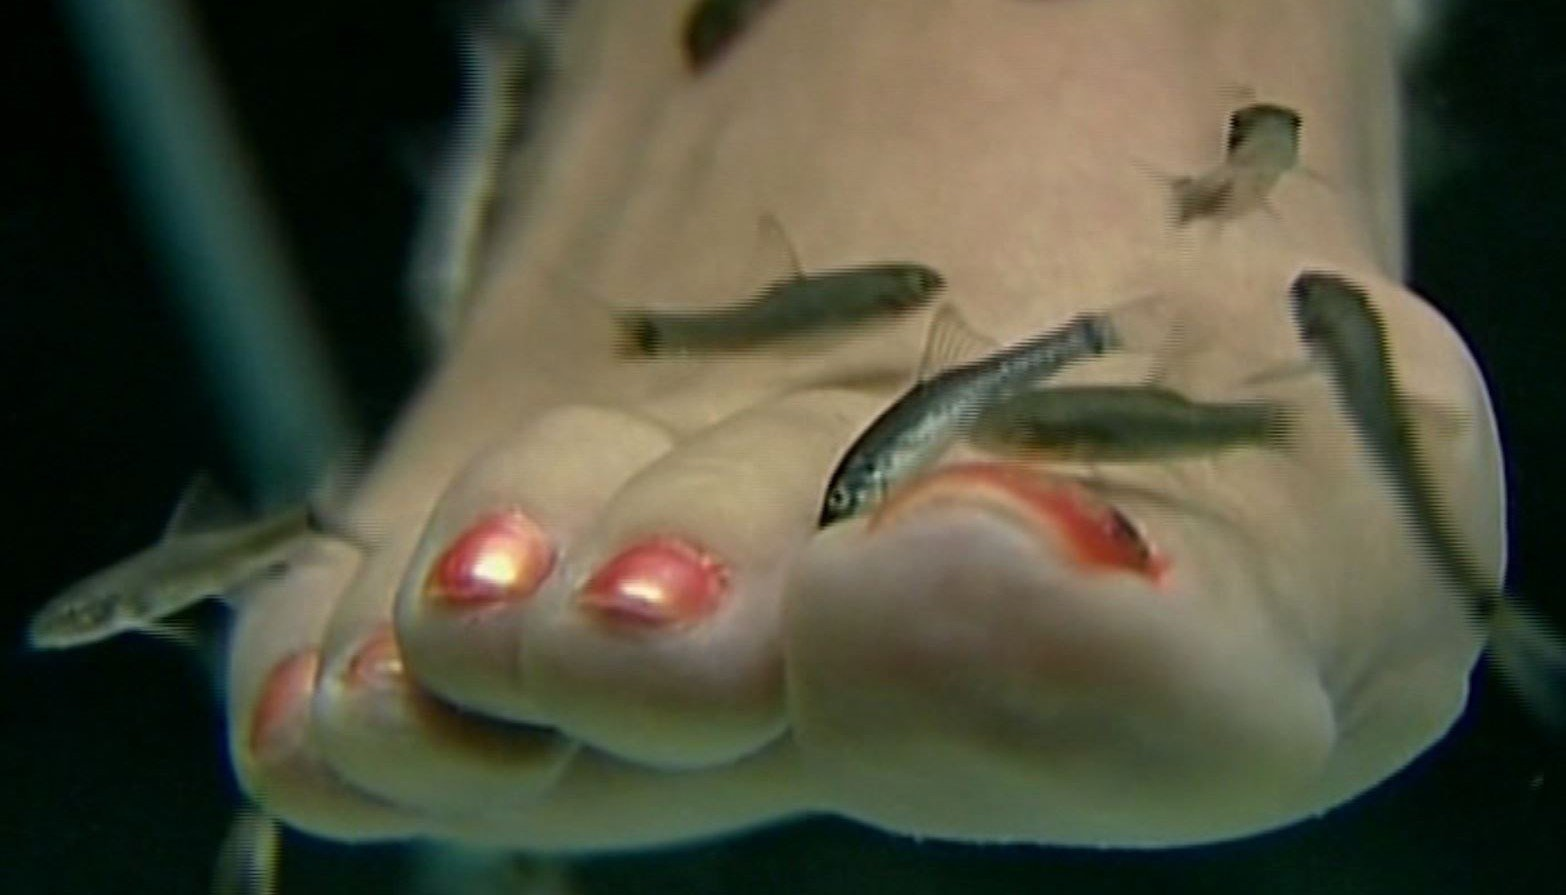 Woman loses toenails after having a trendy fish pedicure